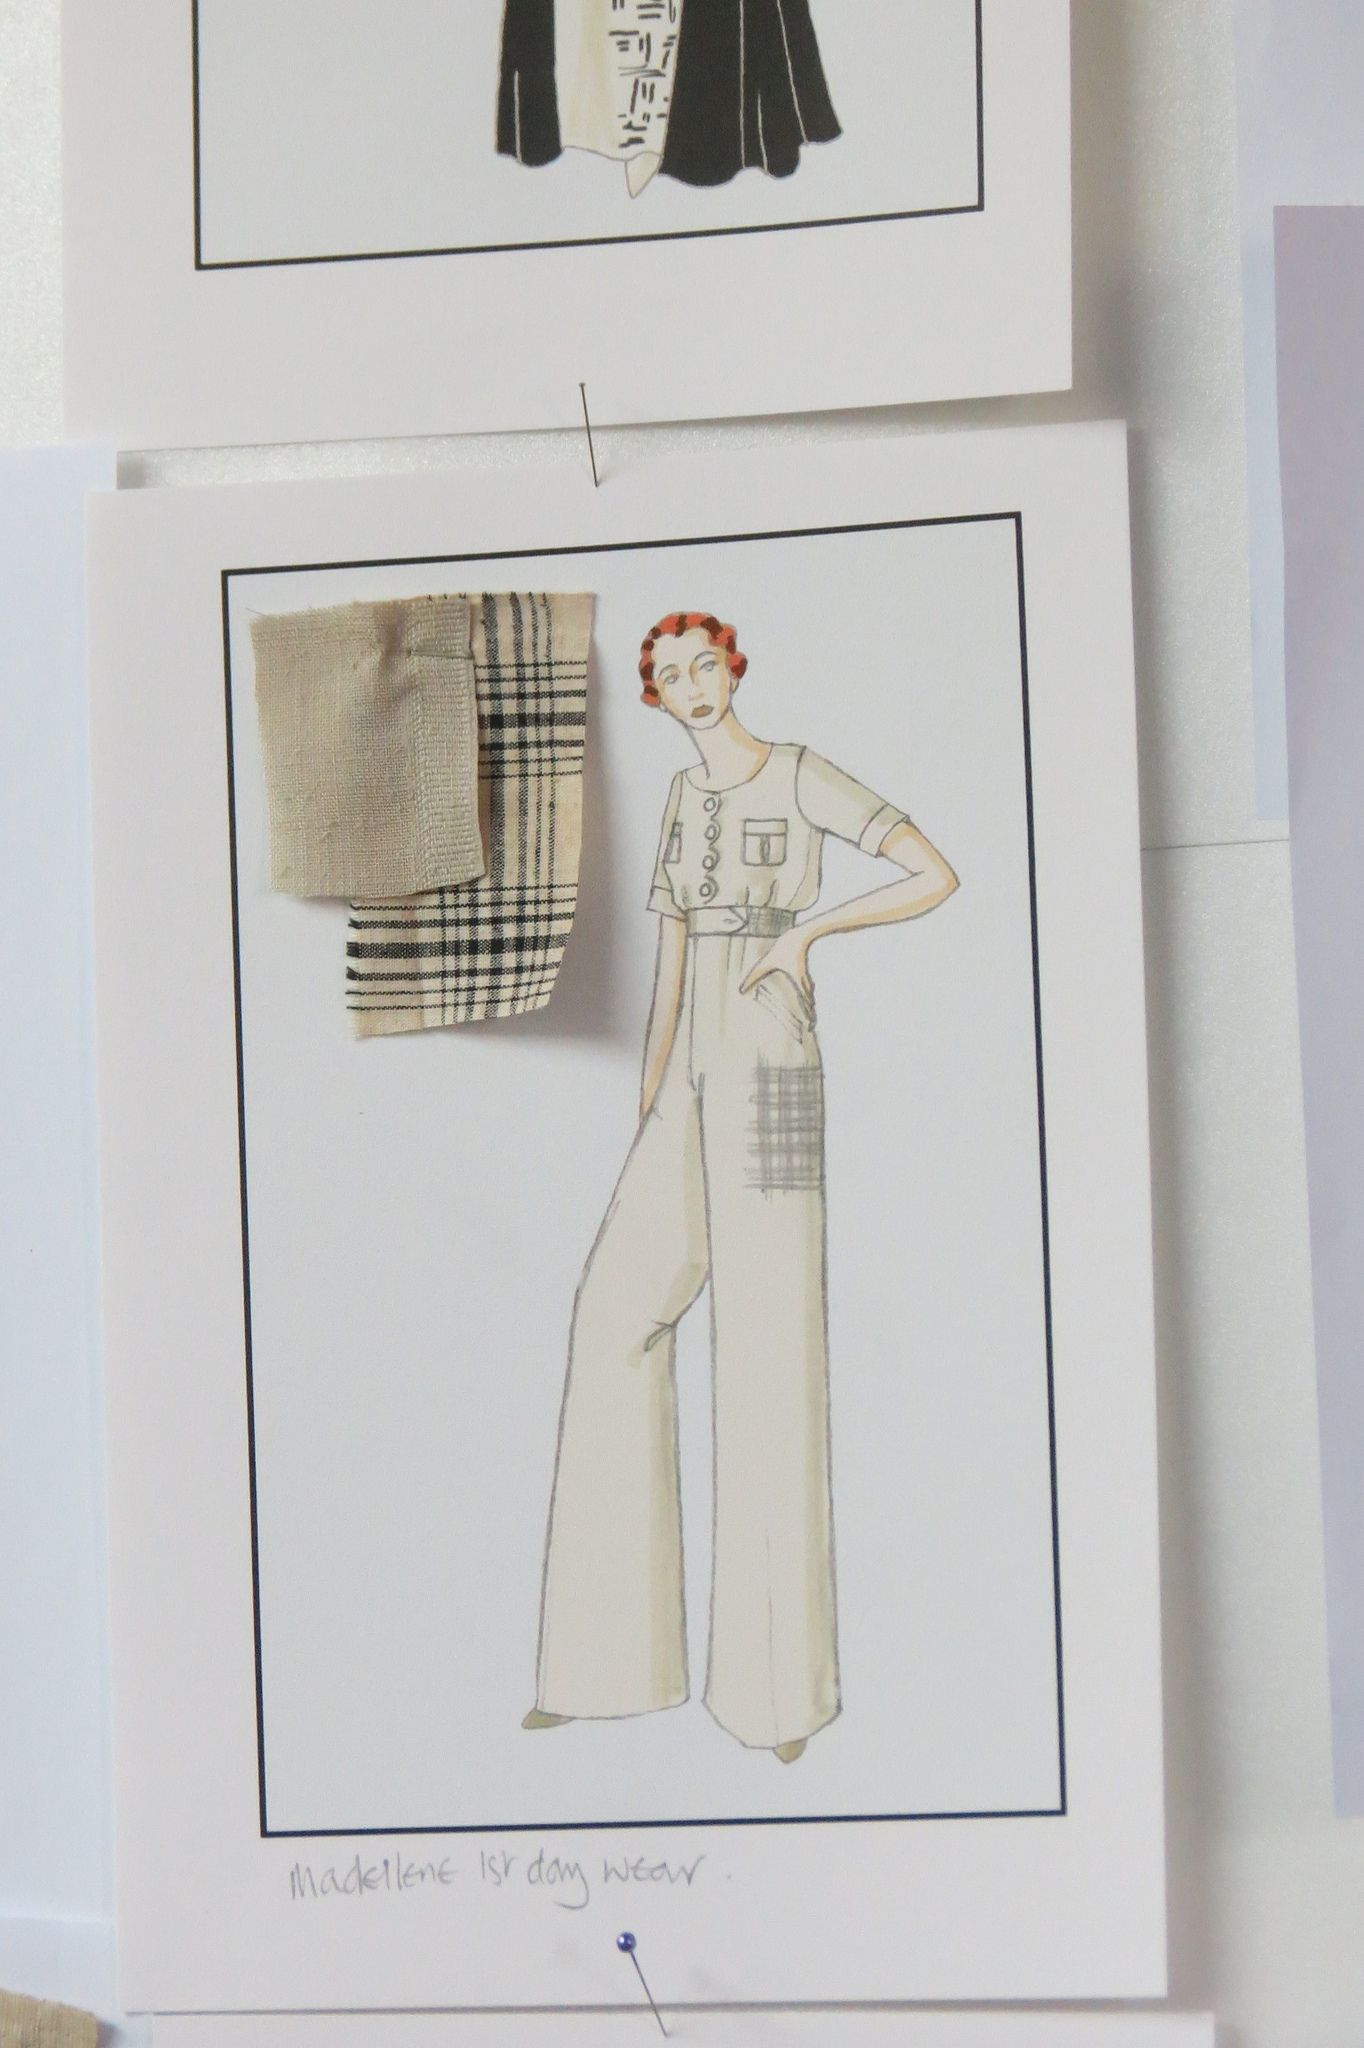 Madeleine daywear sketch from Indian Summers Costume Designer Nic Ede | Courtesy of Rebecca Eaton for MASTERPIECE